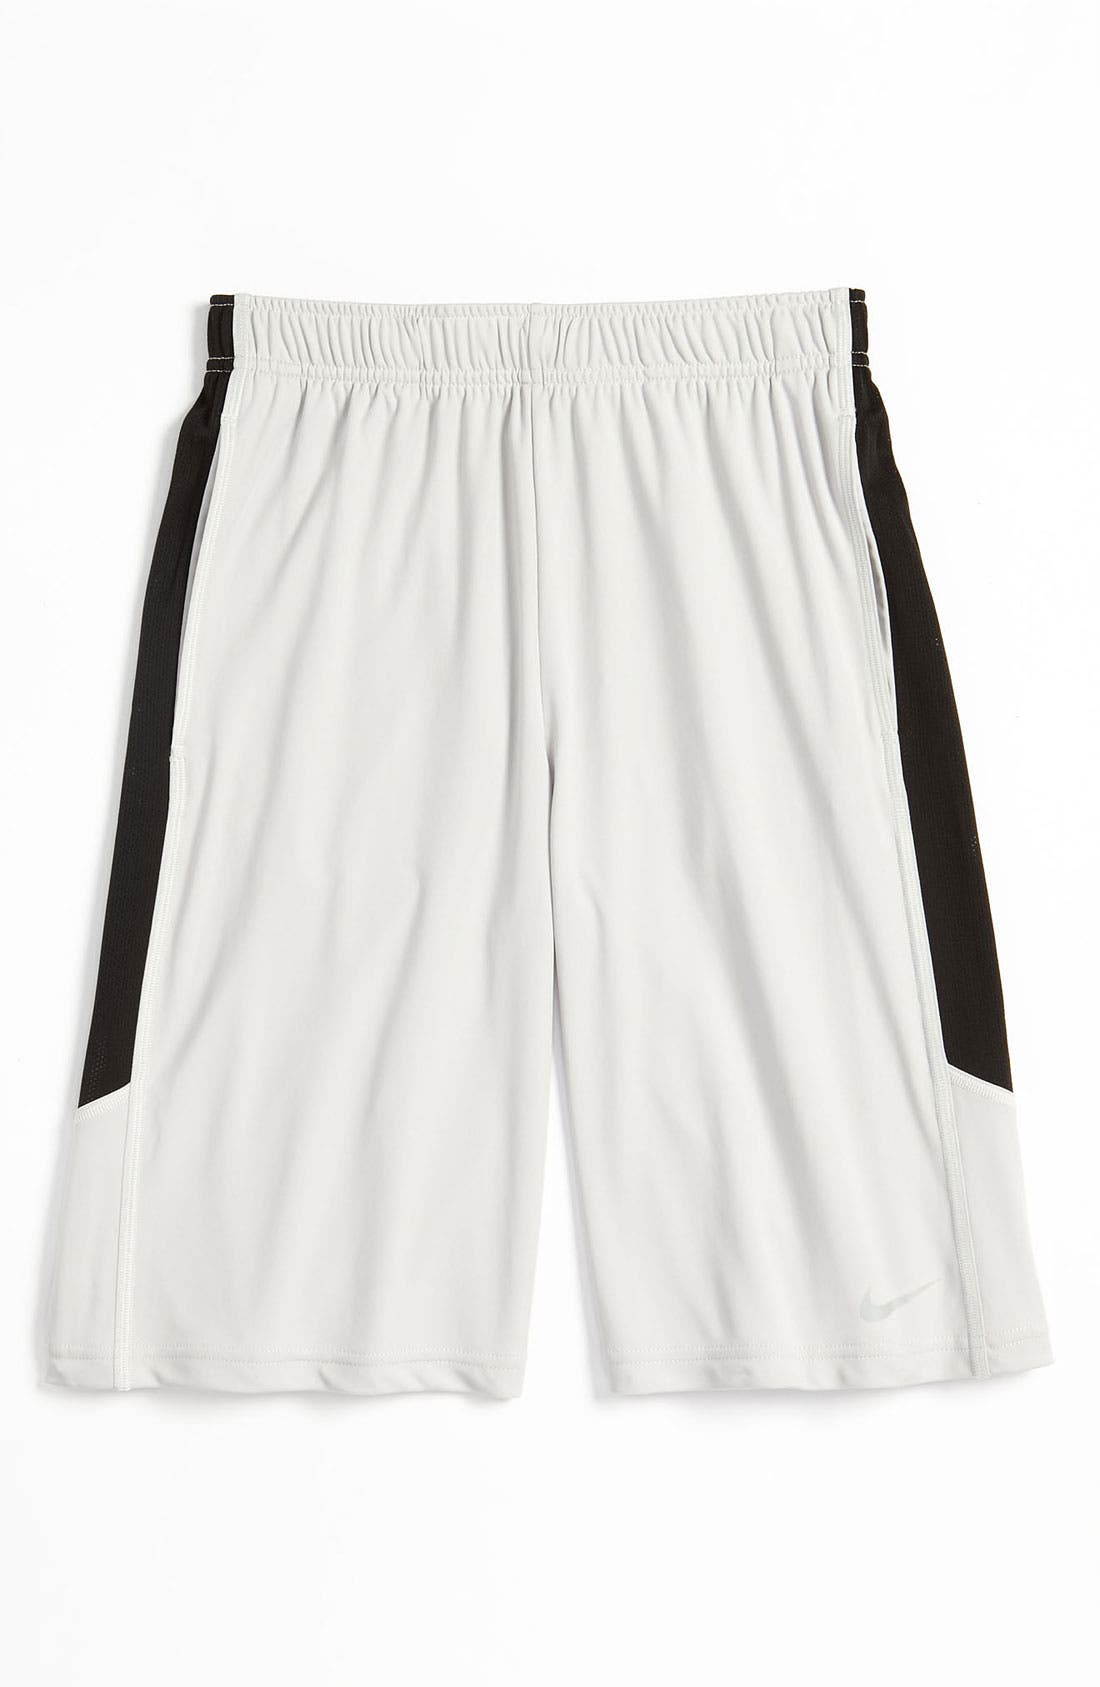 Alternate Image 1 Selected - Nike 'Lights Out' Shorts (Big Boys)